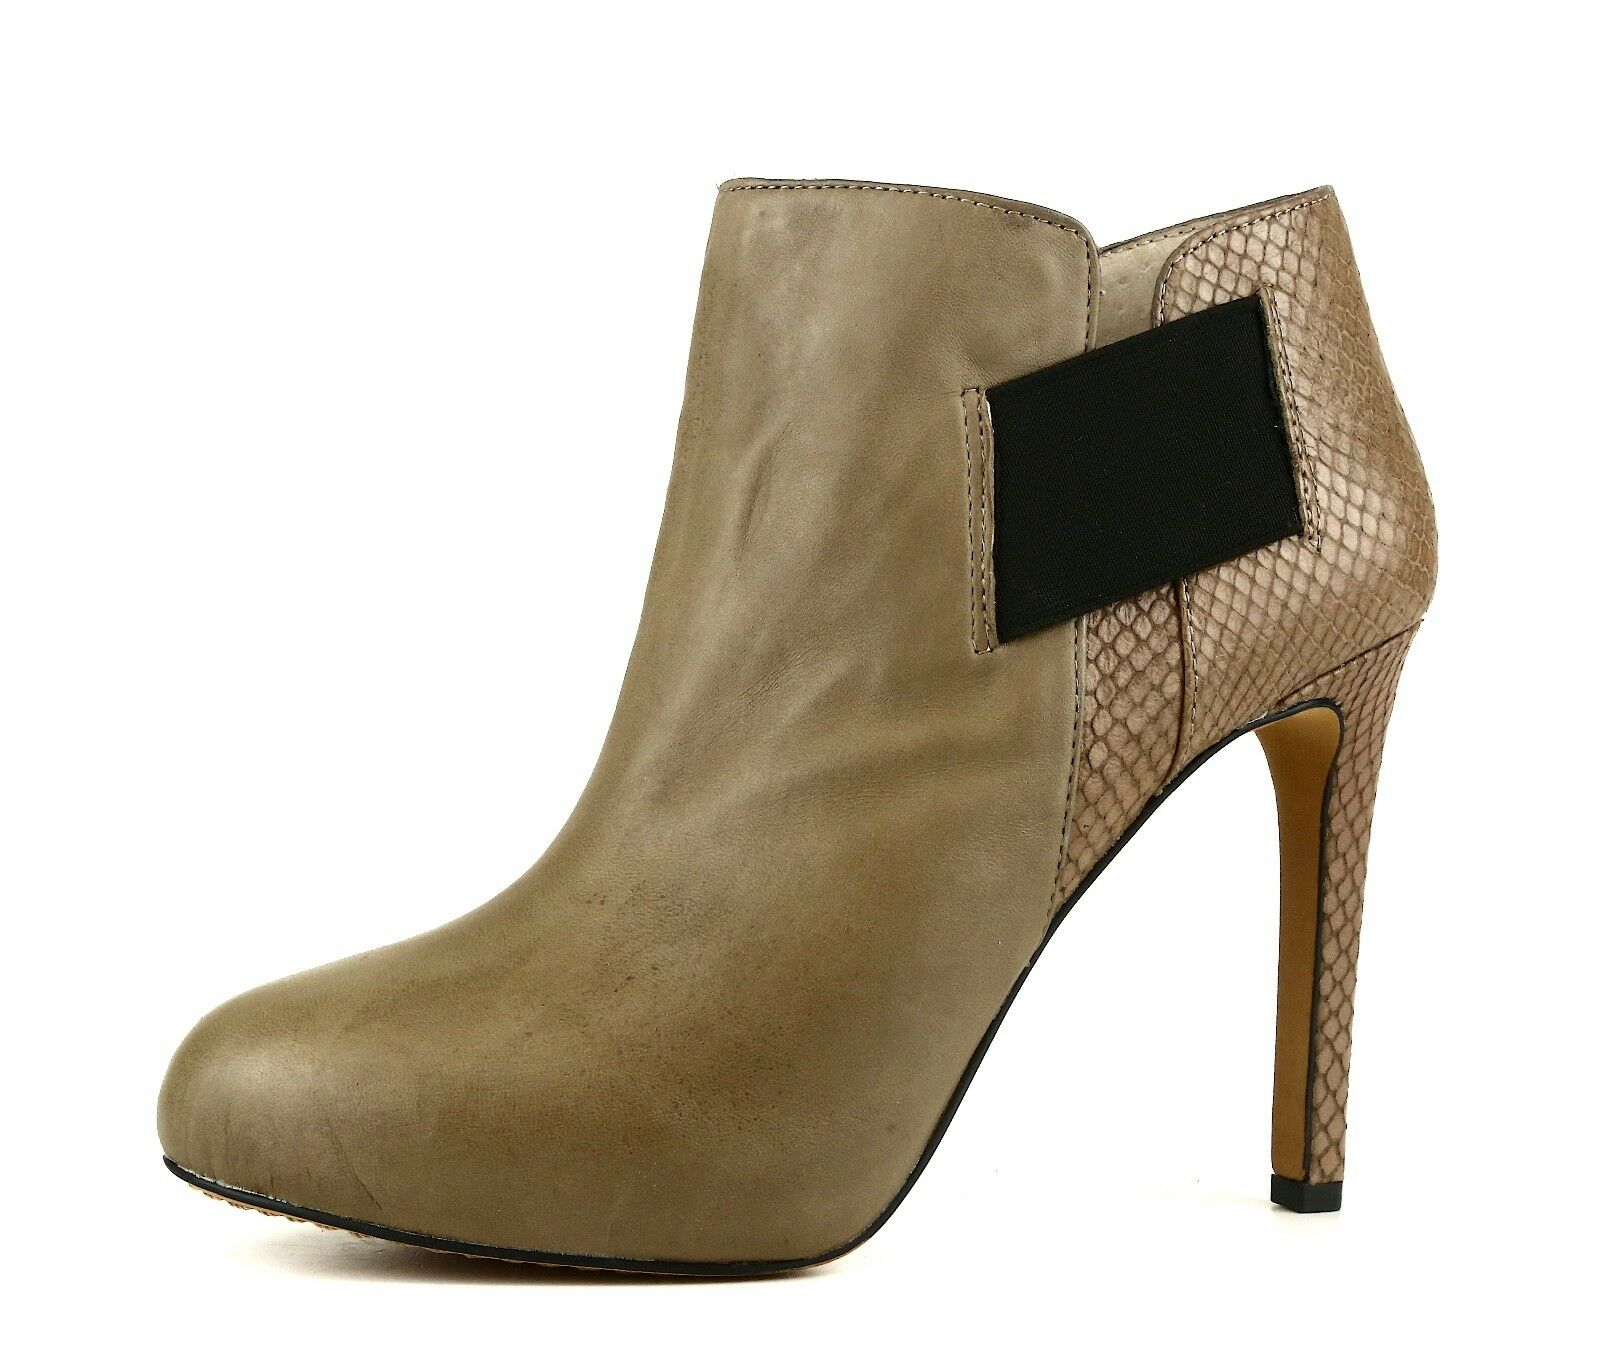 Vince Camuto Arianah Leather Bootie Taupe Women Sz 8 M 5510